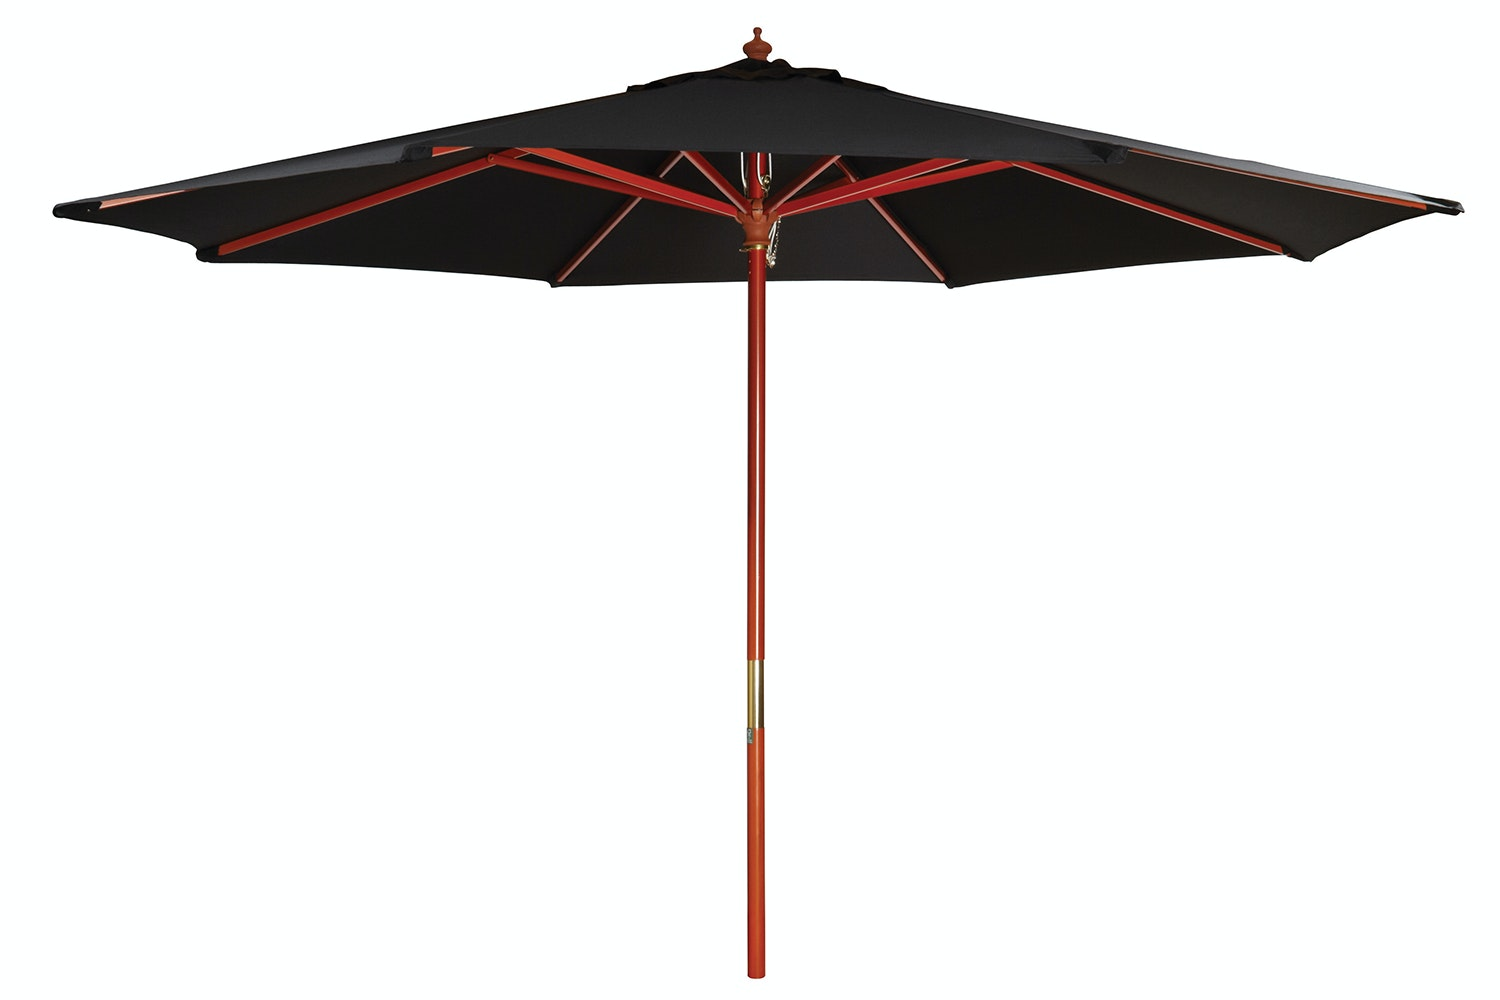 Kosmo 2.7m Outdoor Umbrella - Black - Peros